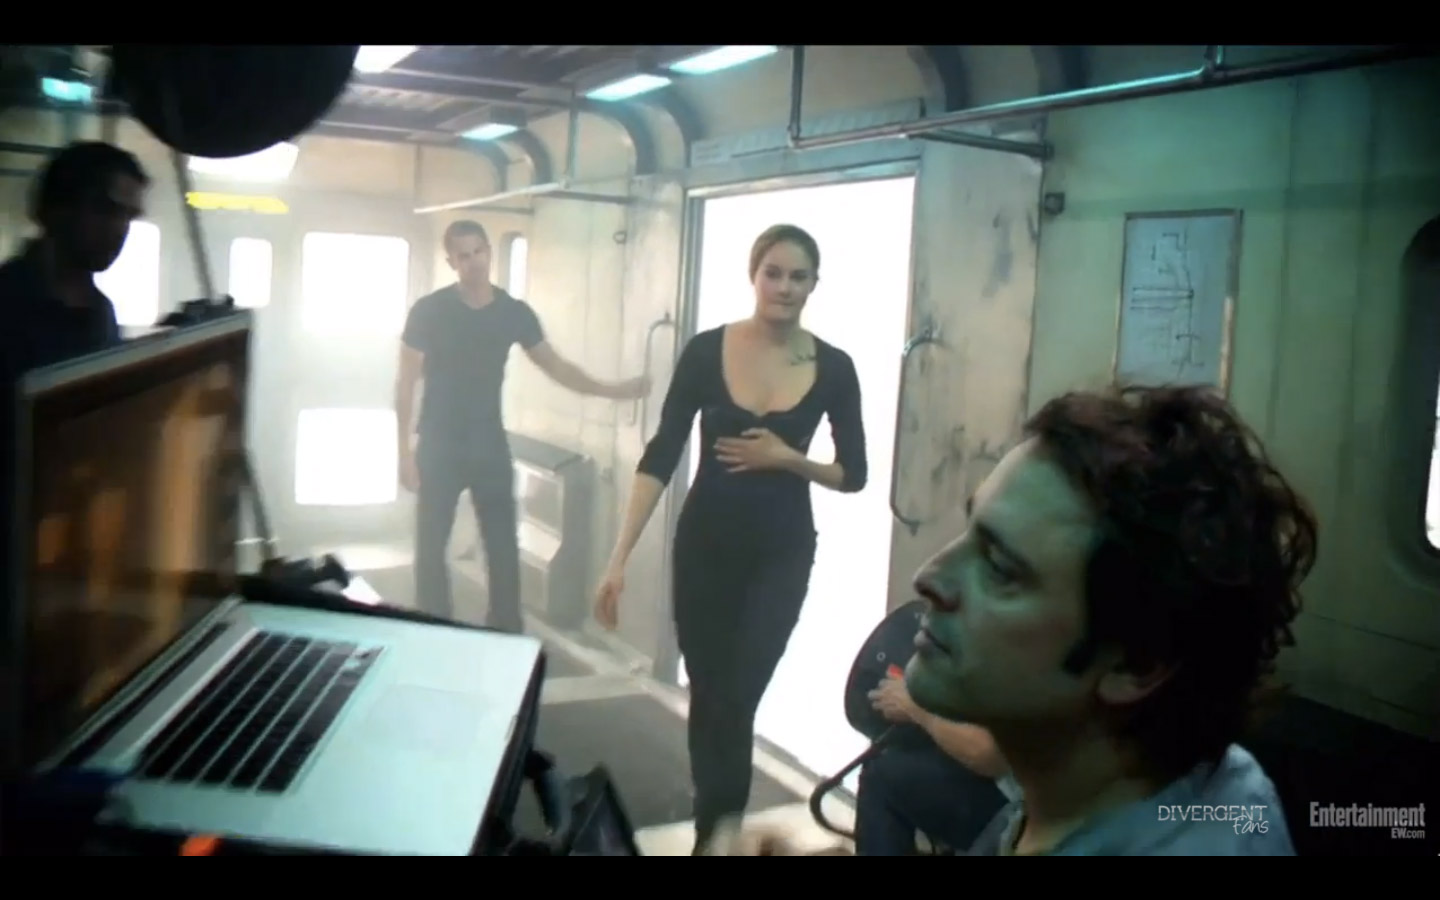 divergent movie synergy selected to fabricate steel props